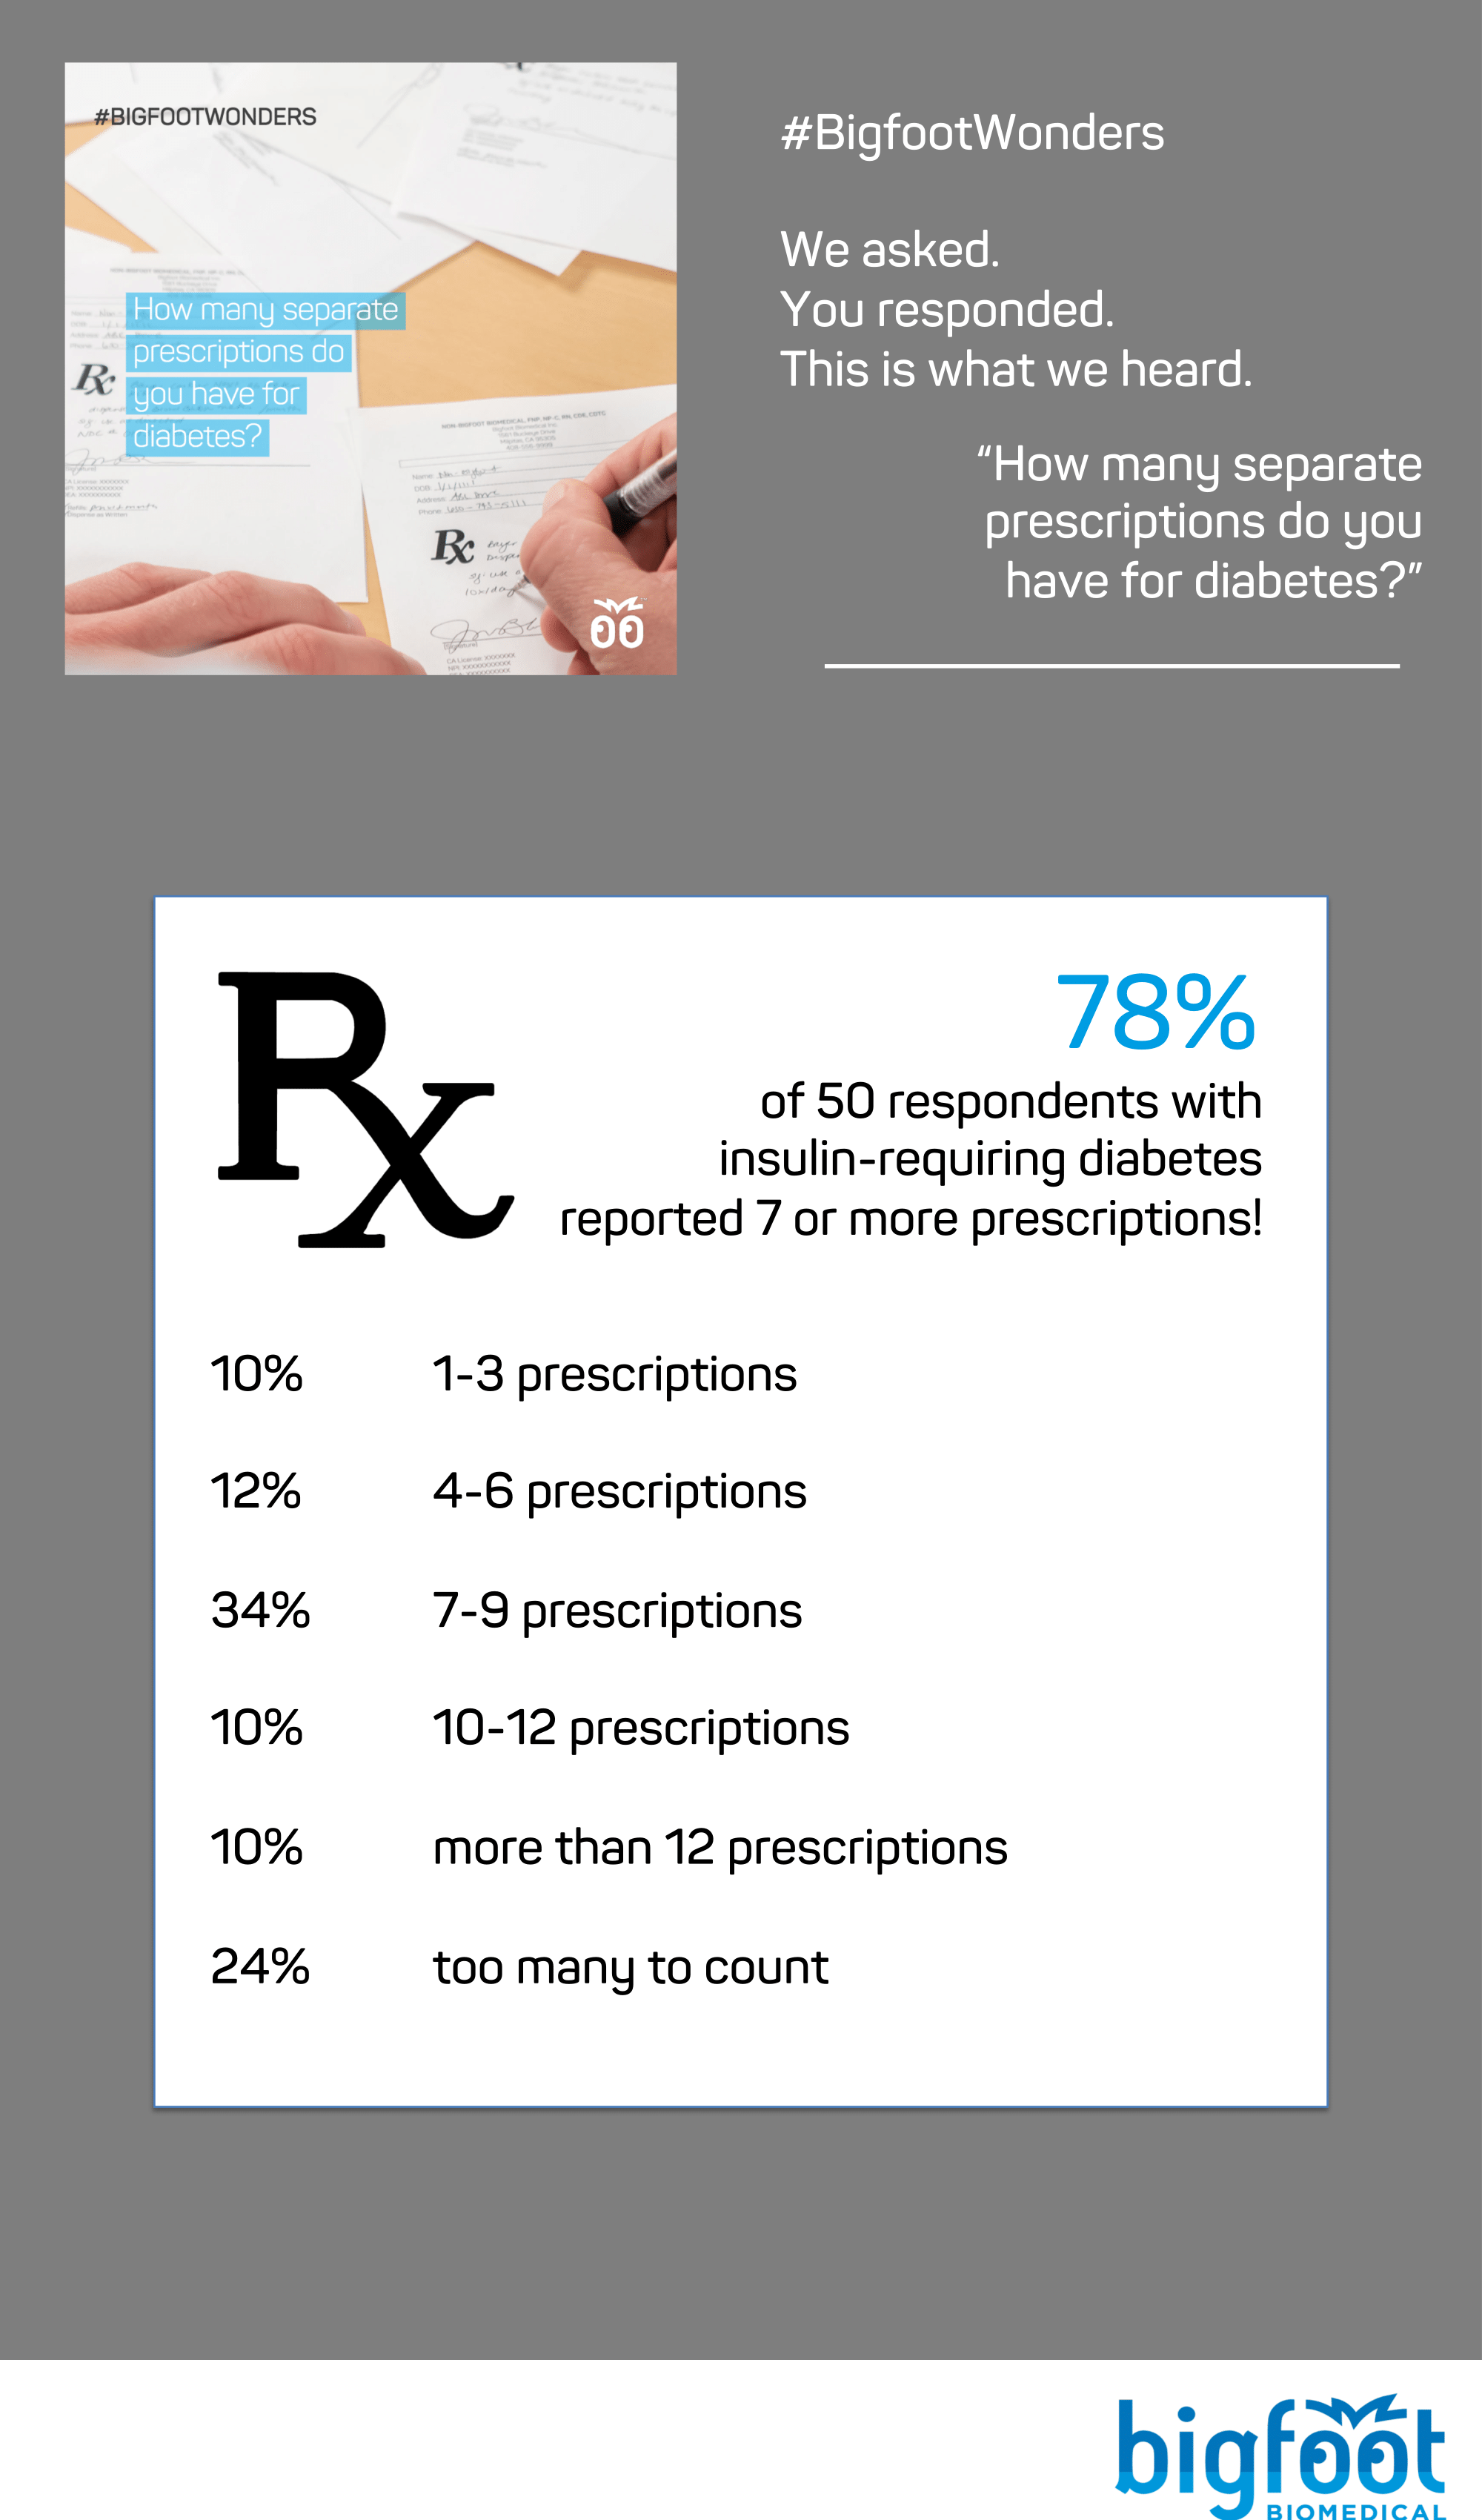 78% of 50 respondents with insulin-requiring diabetes reported having 7 or more prescriptions to manage, with the most common number being 7-9 separate prescriptions (34%).